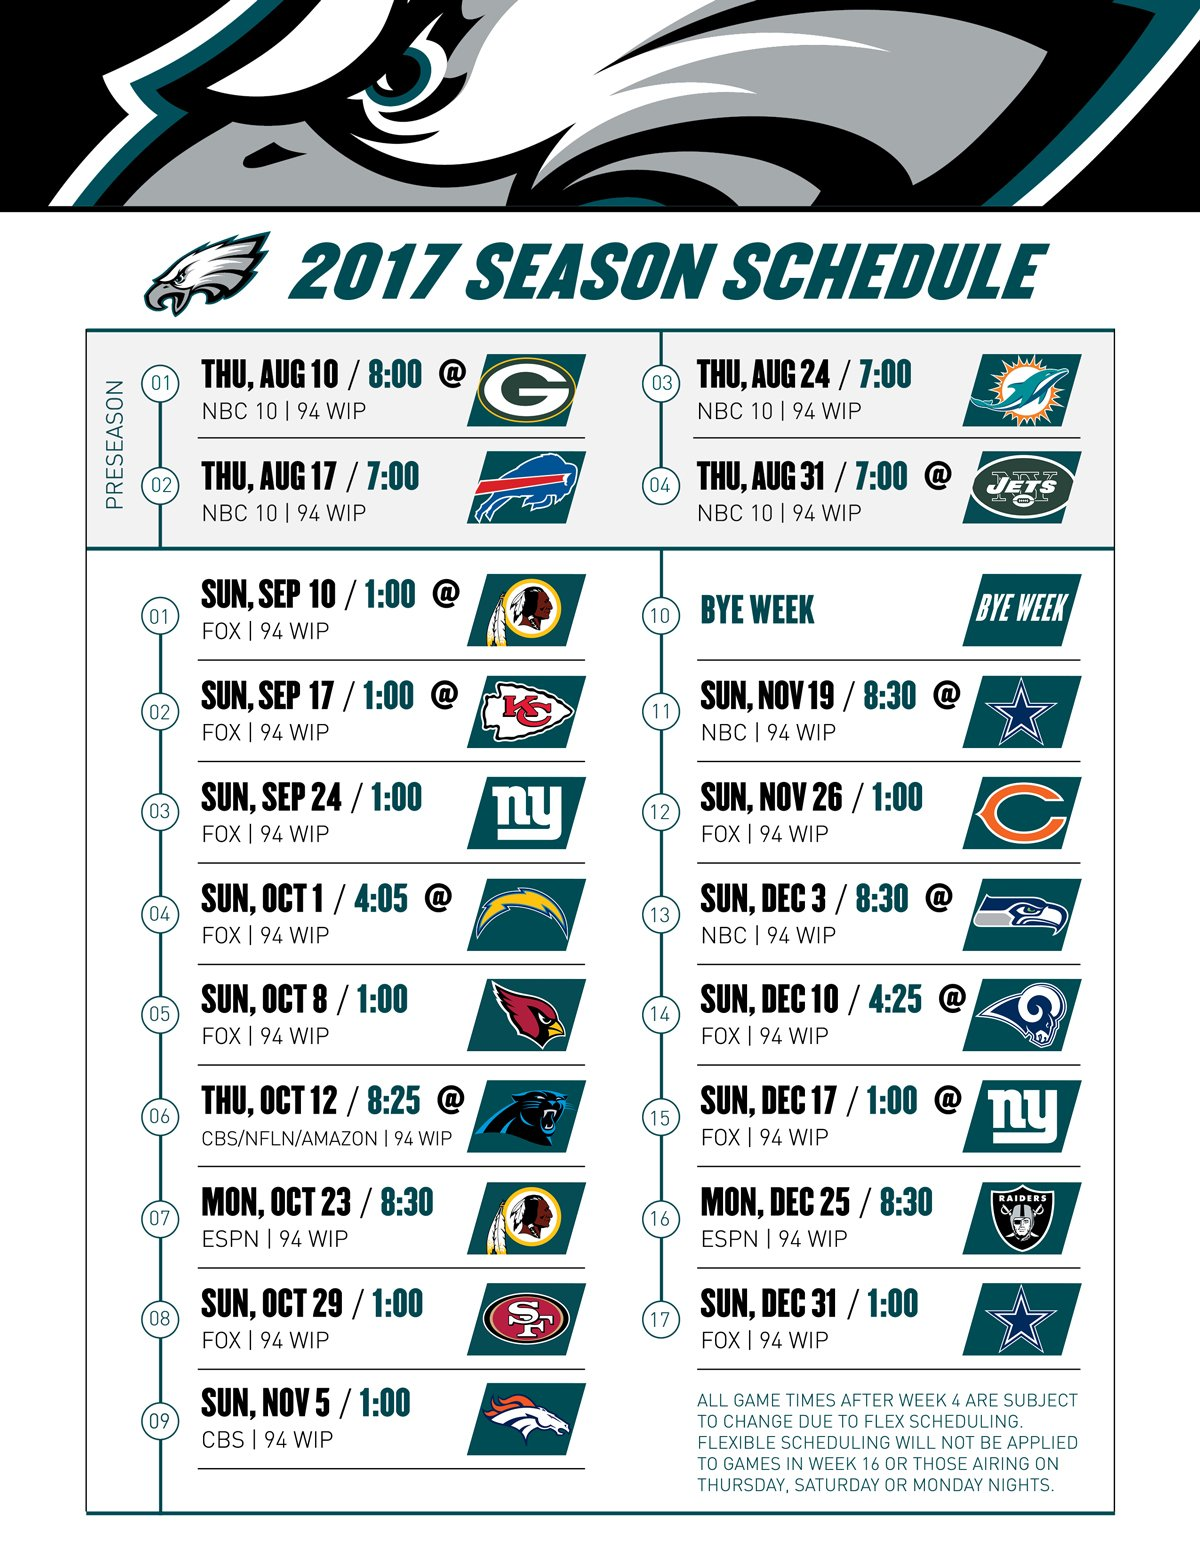 And here it is: The #Eagles 2017 regular season schedule #FlyEaglesFly https://t.co/4IkaVQY2Es